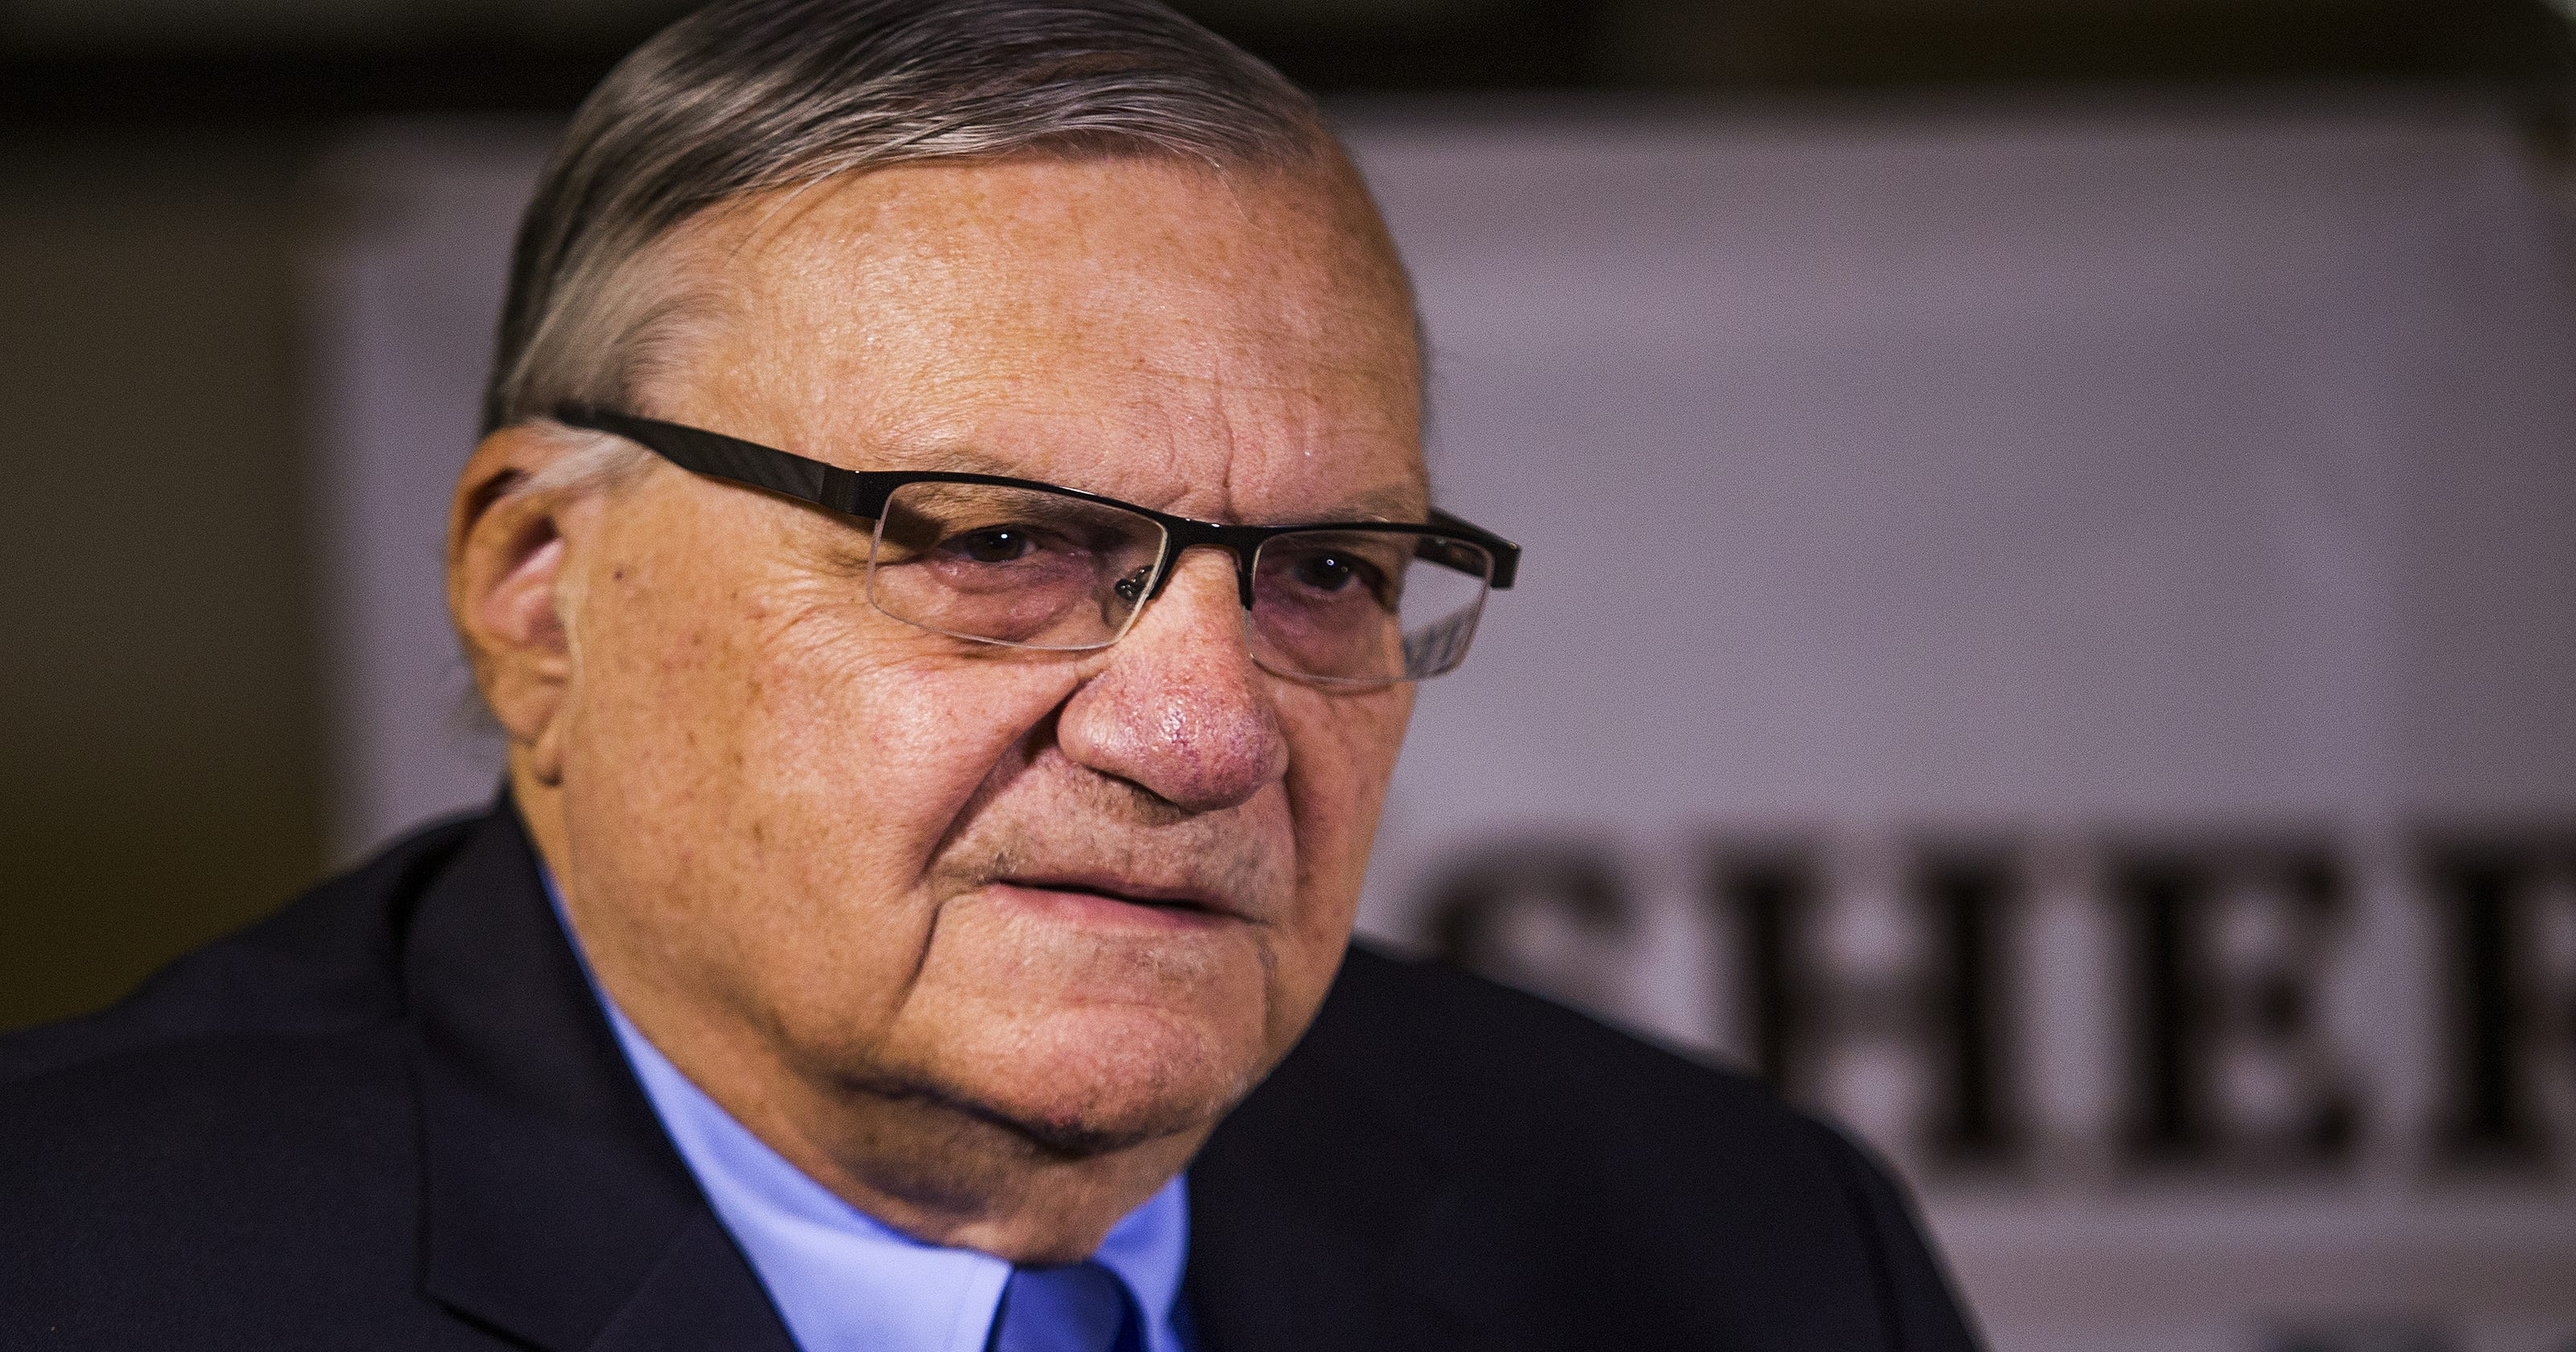 Joe Arpaio campaign complains that Cindy McCain blocked him on Twitter